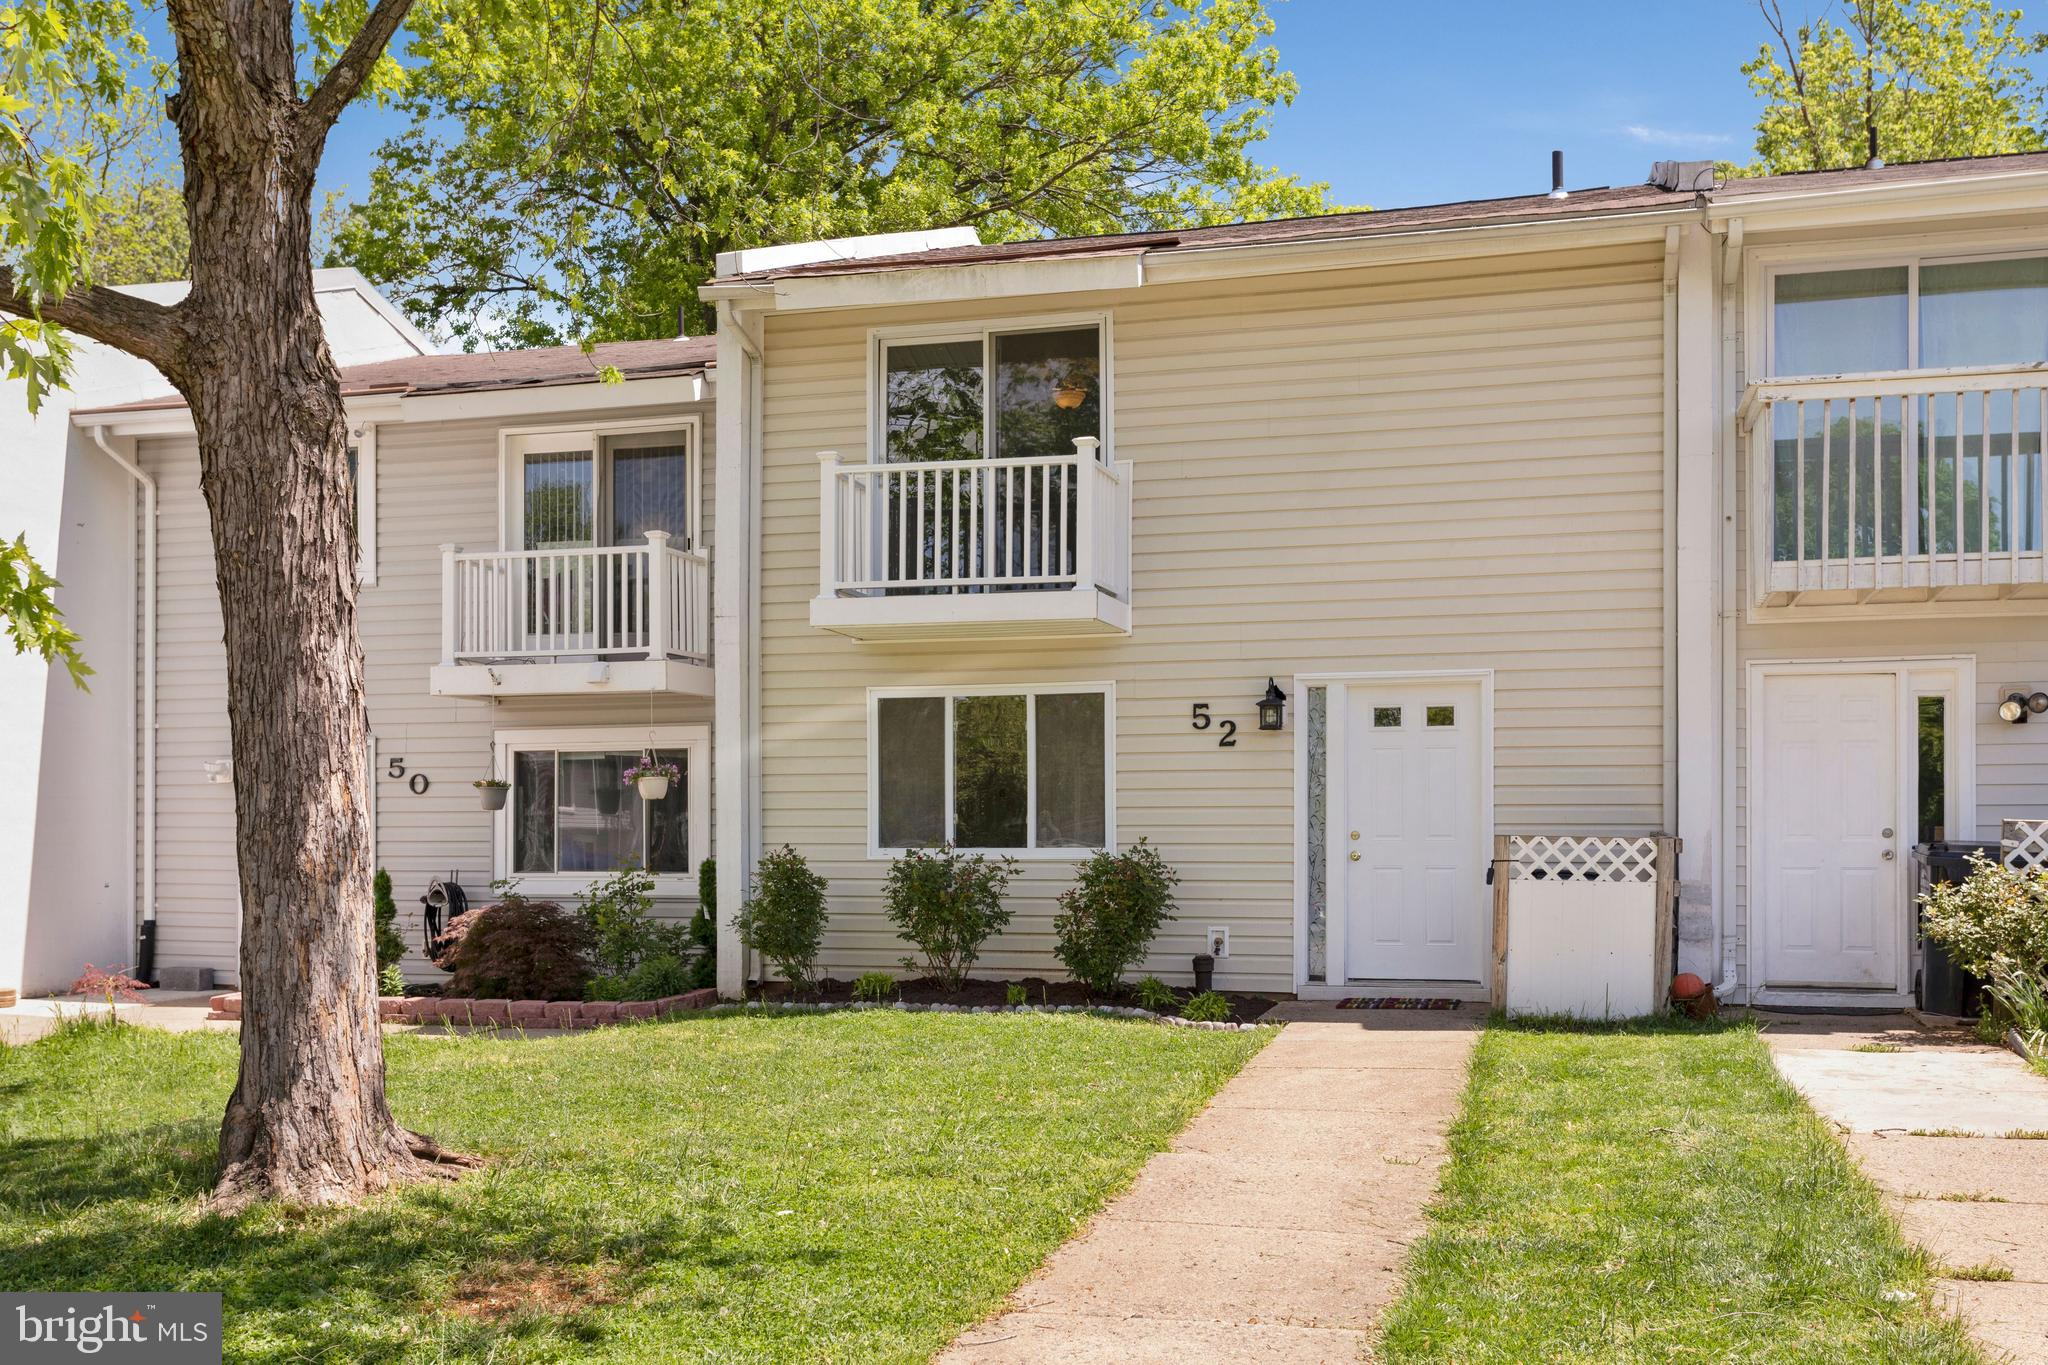 Open House this Tuesday from 4 PM to 7 PM. Please contact listing agent directly if you would like a